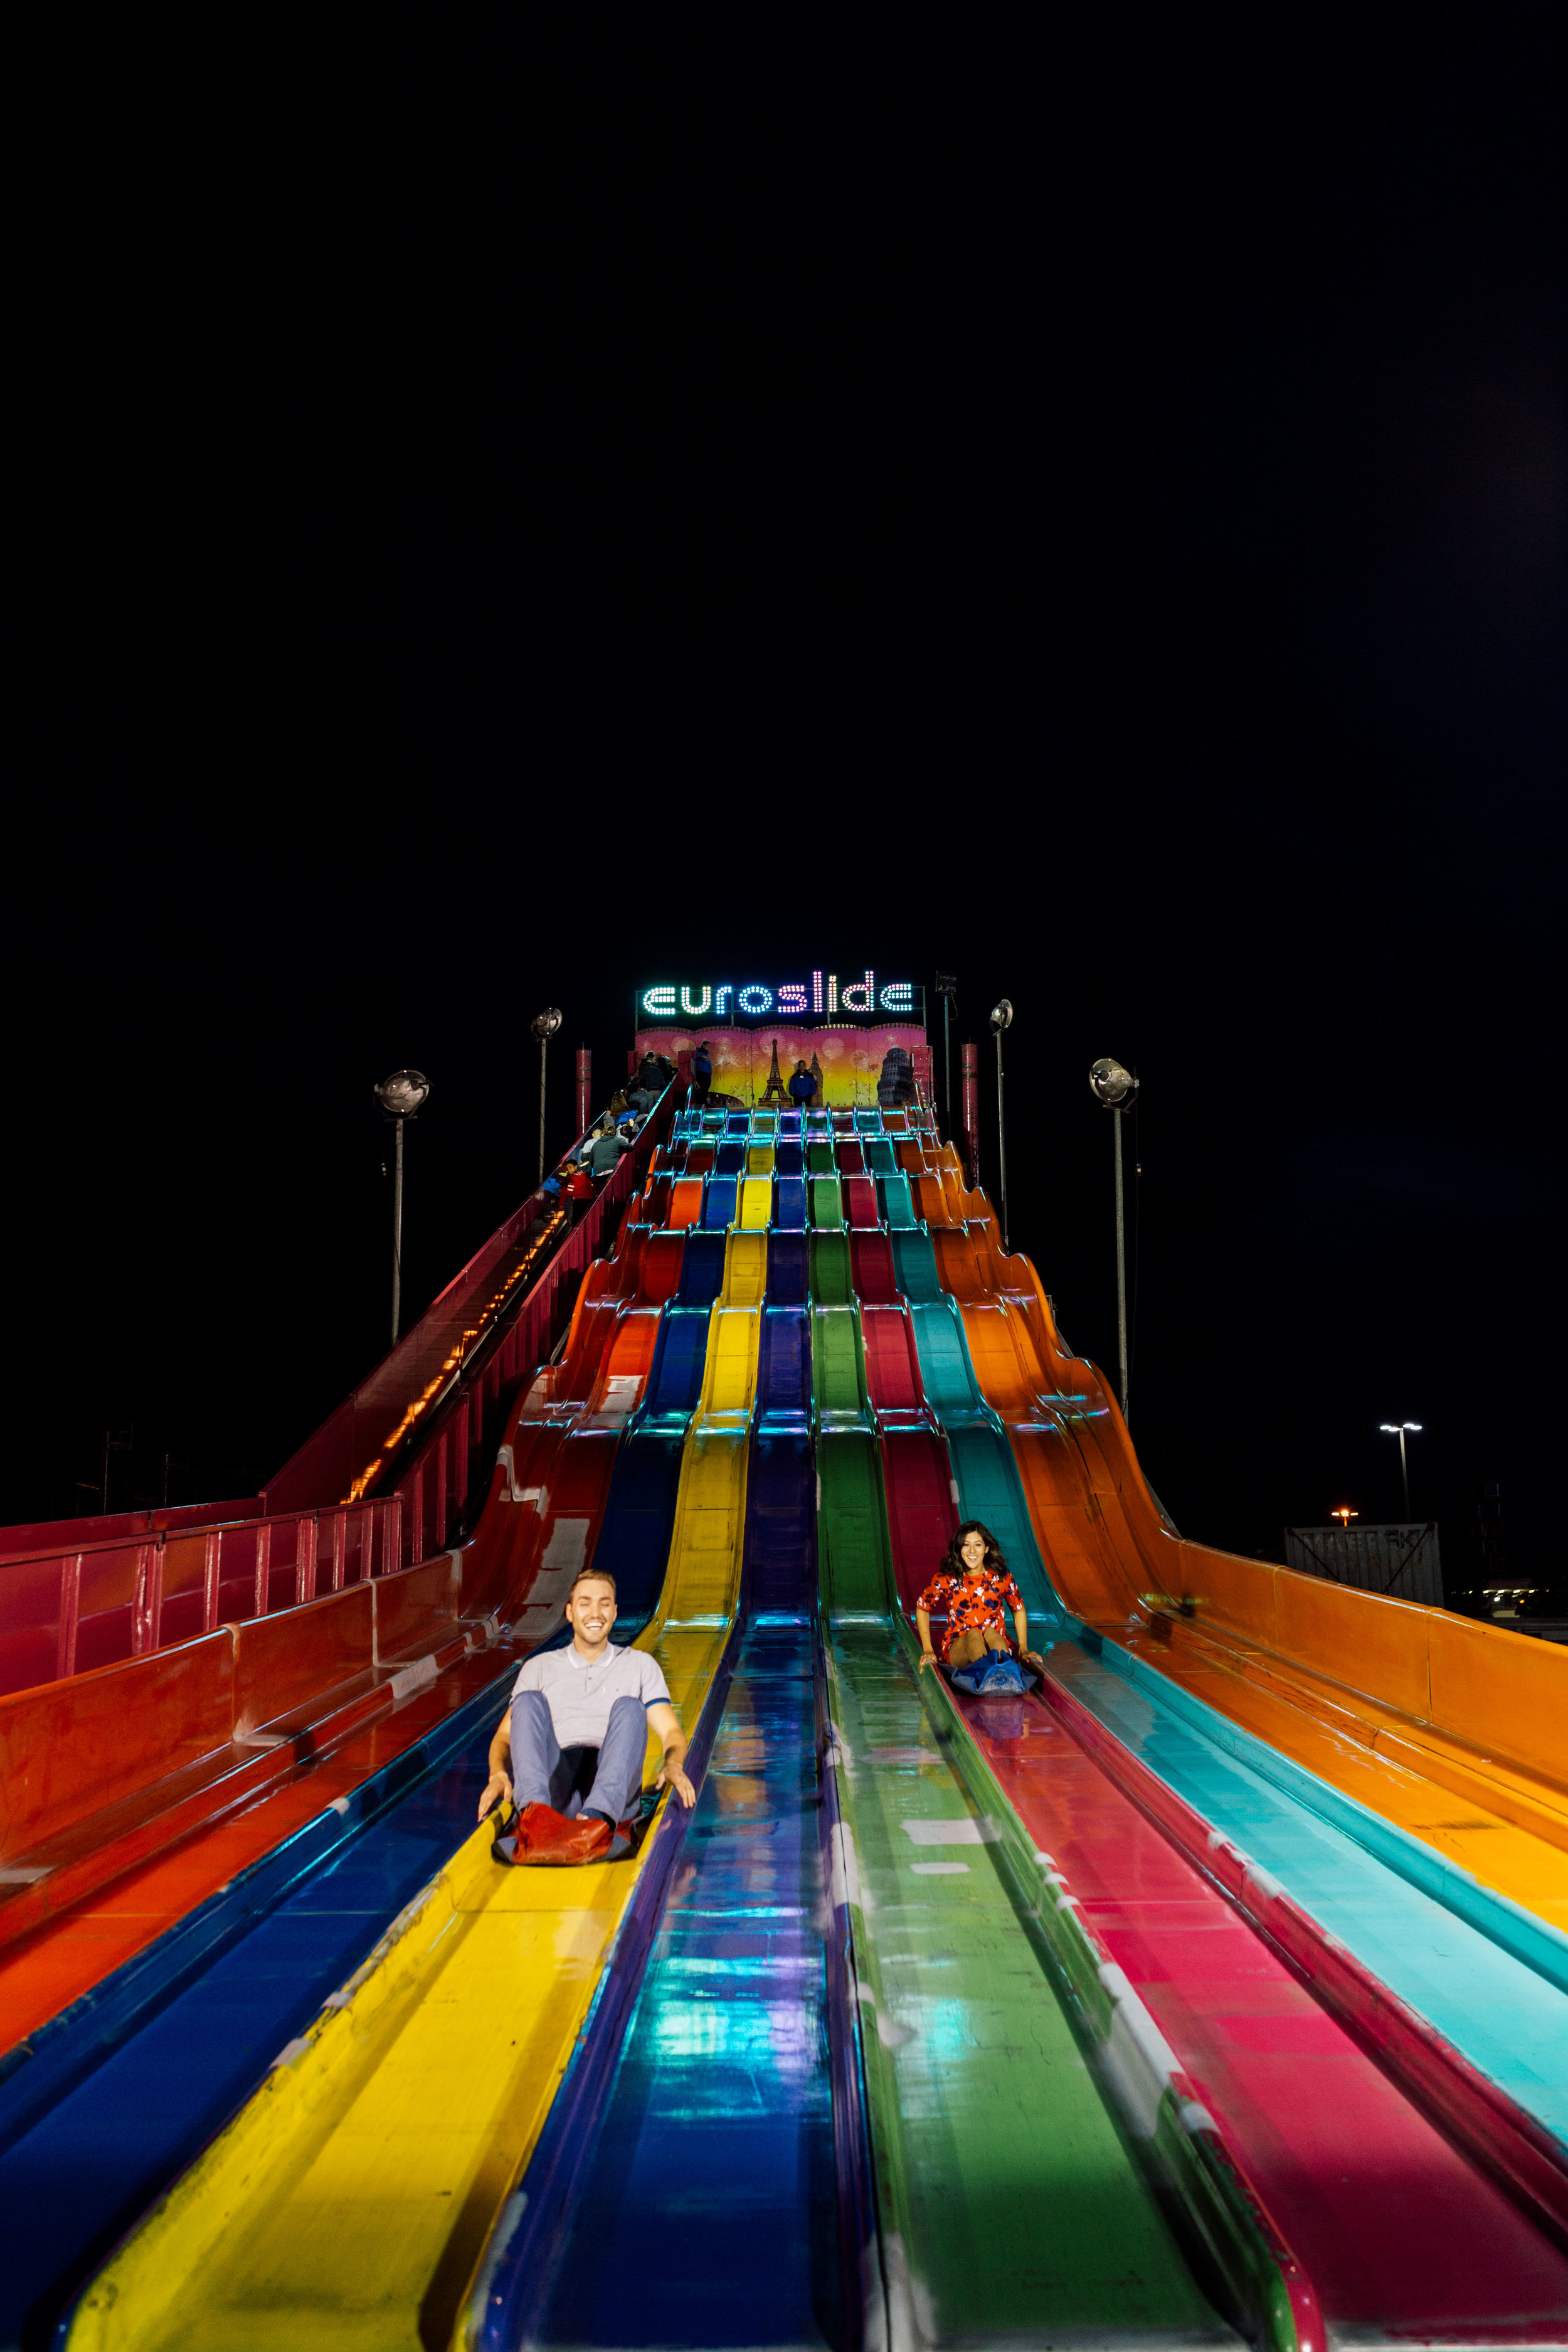 Engagement_Photography_Carnival_Fair-youthebestphotos-15.jpg